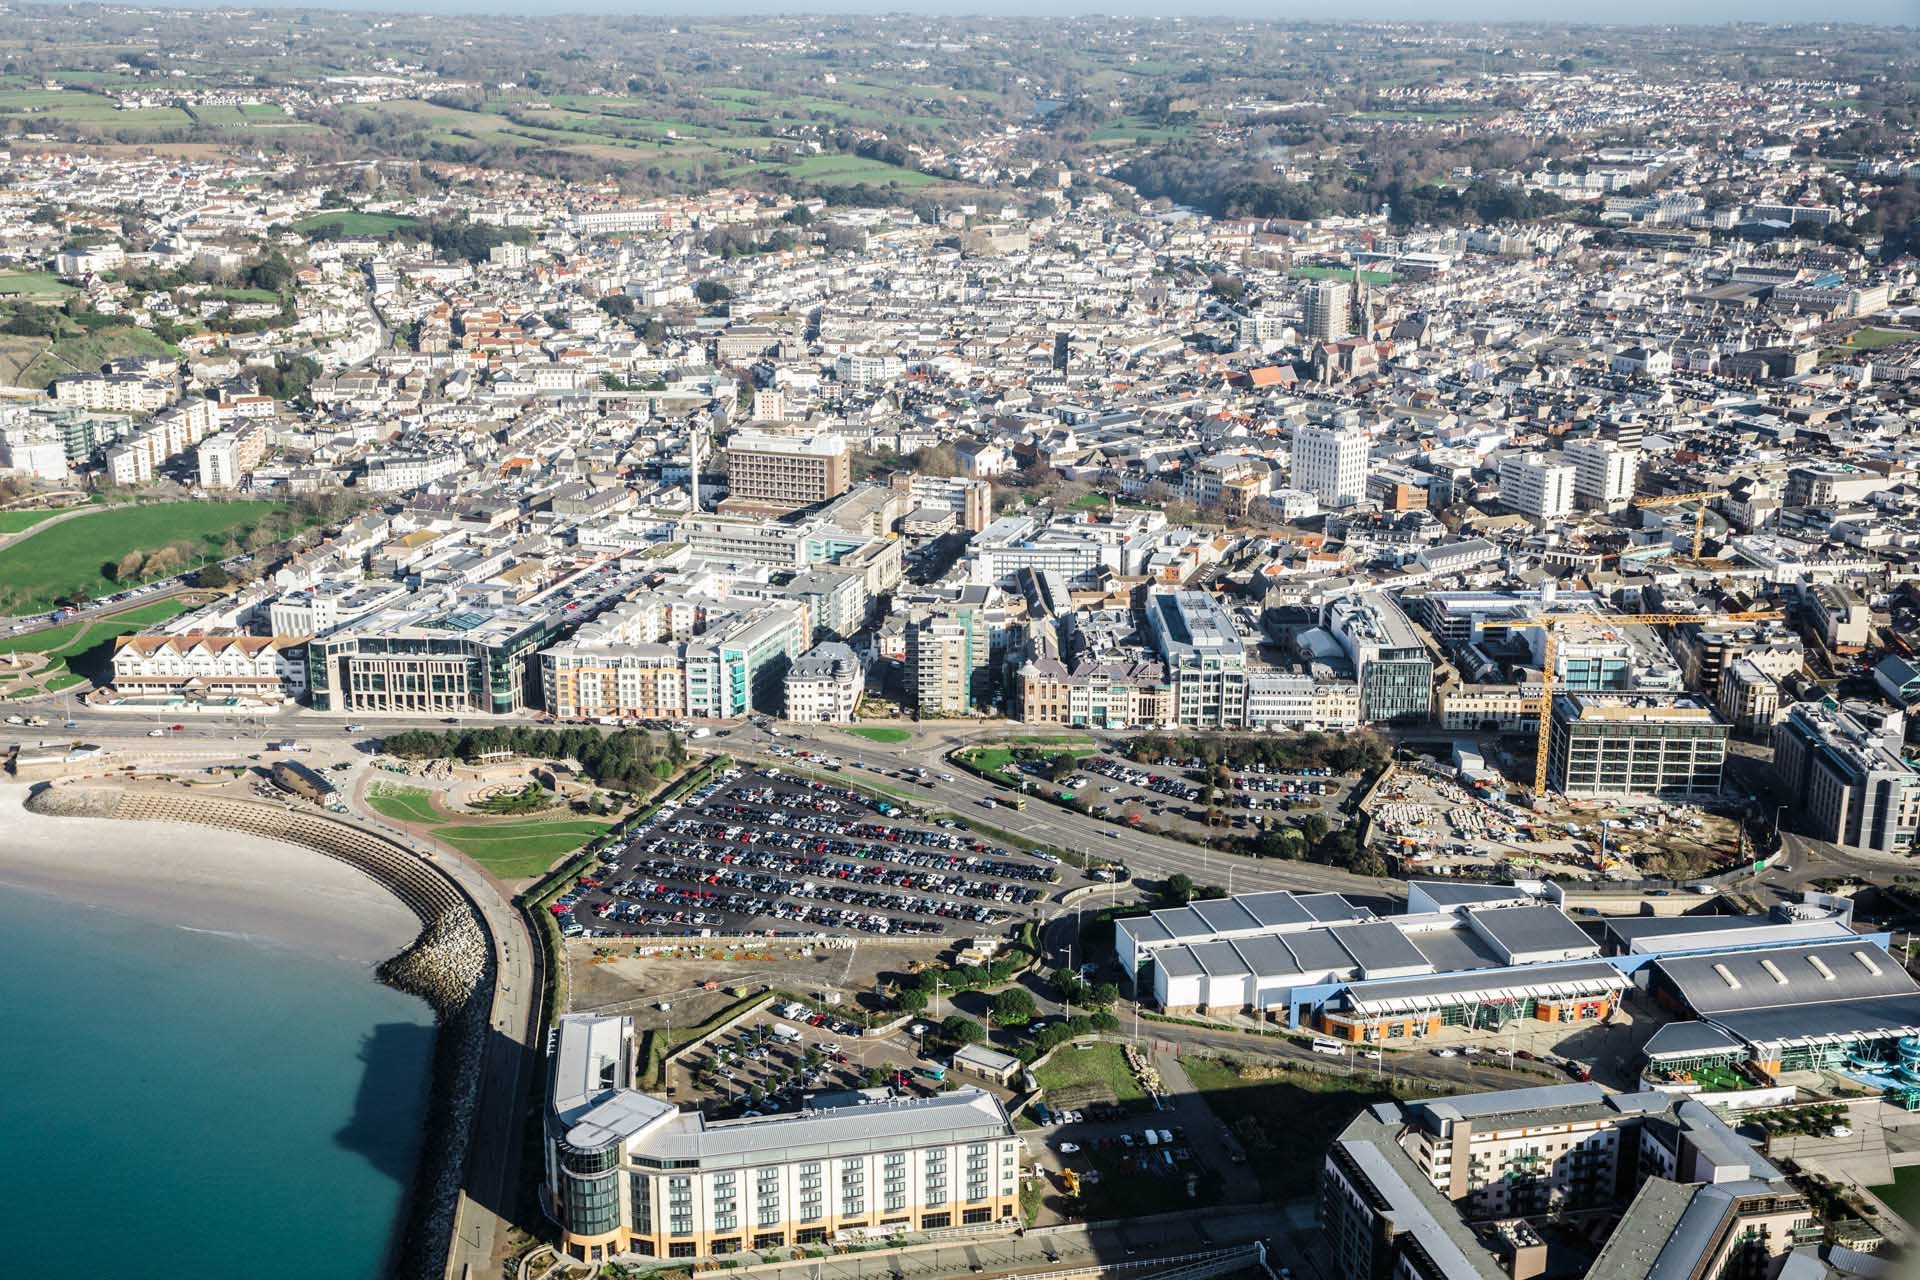 Aerial View of St Helier